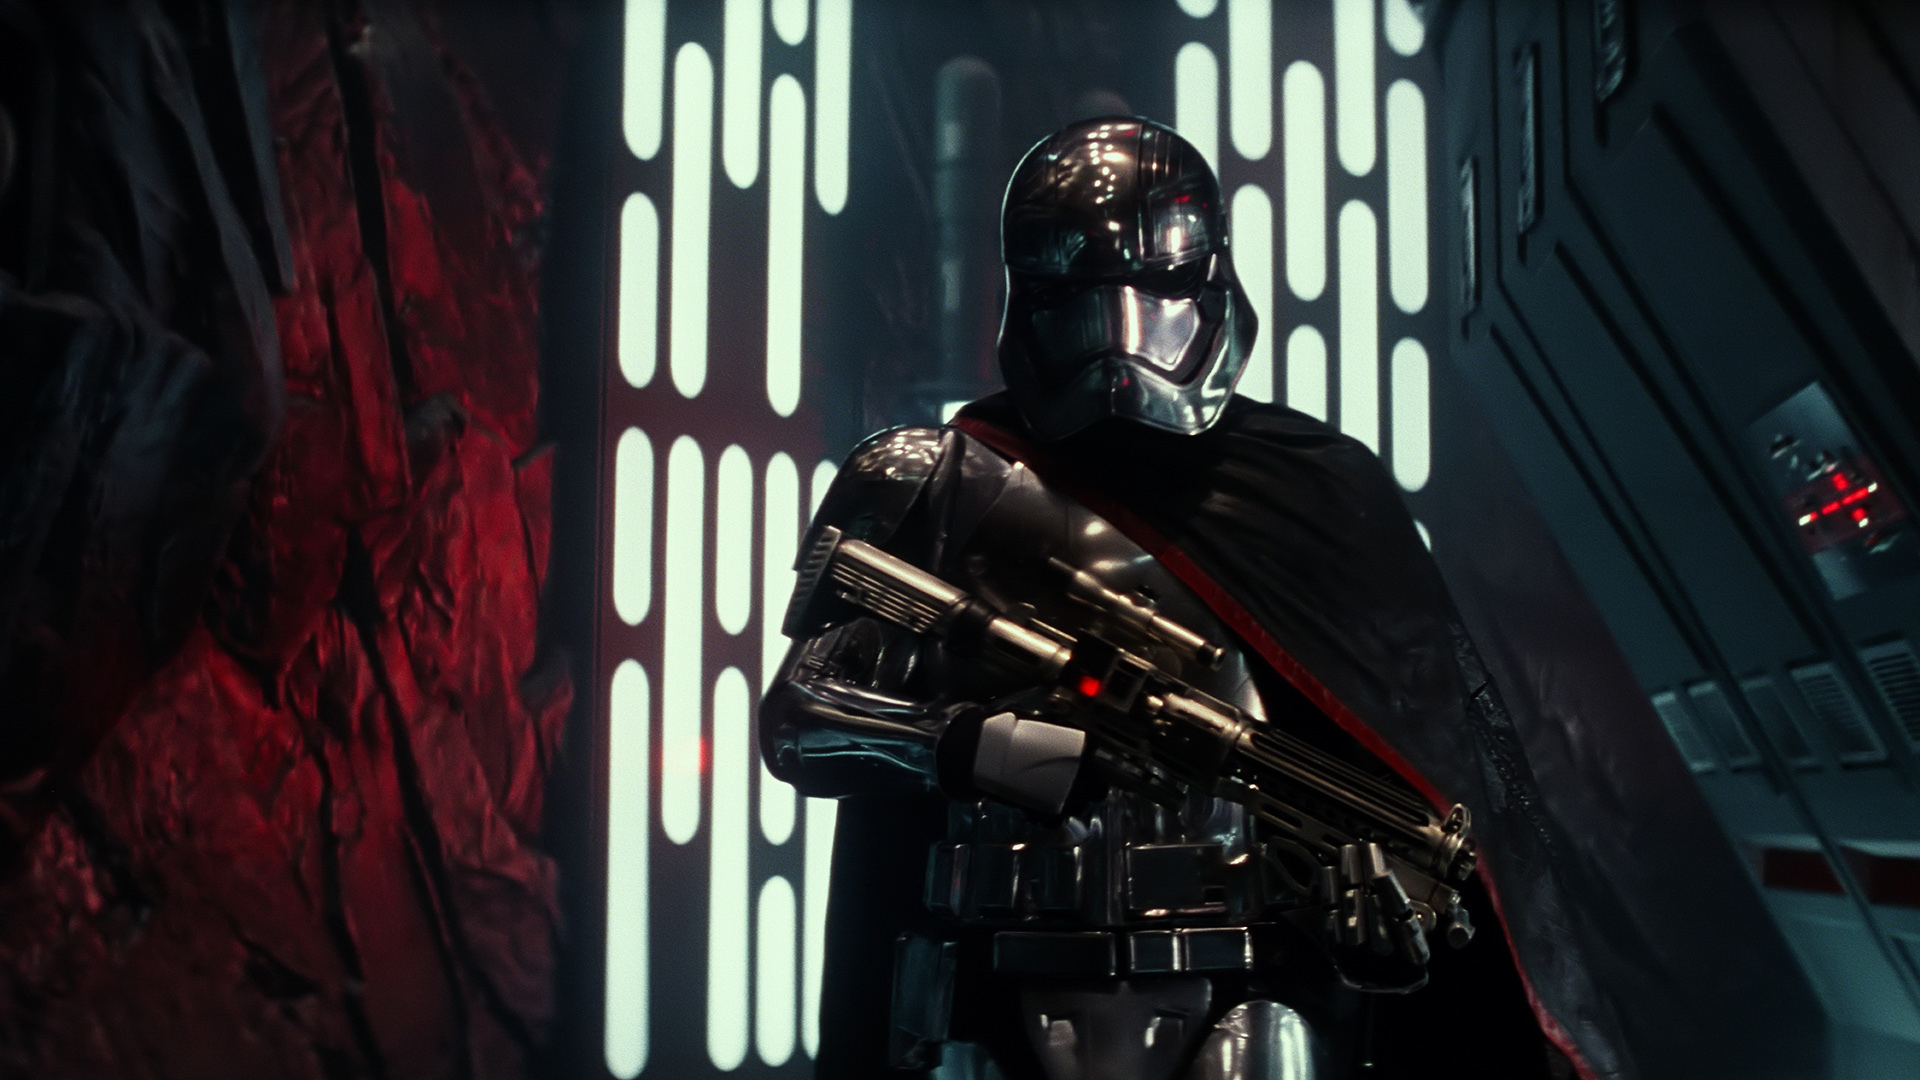 Star Wars The Force Awakens Wallpaper: Awesome Wallpapers